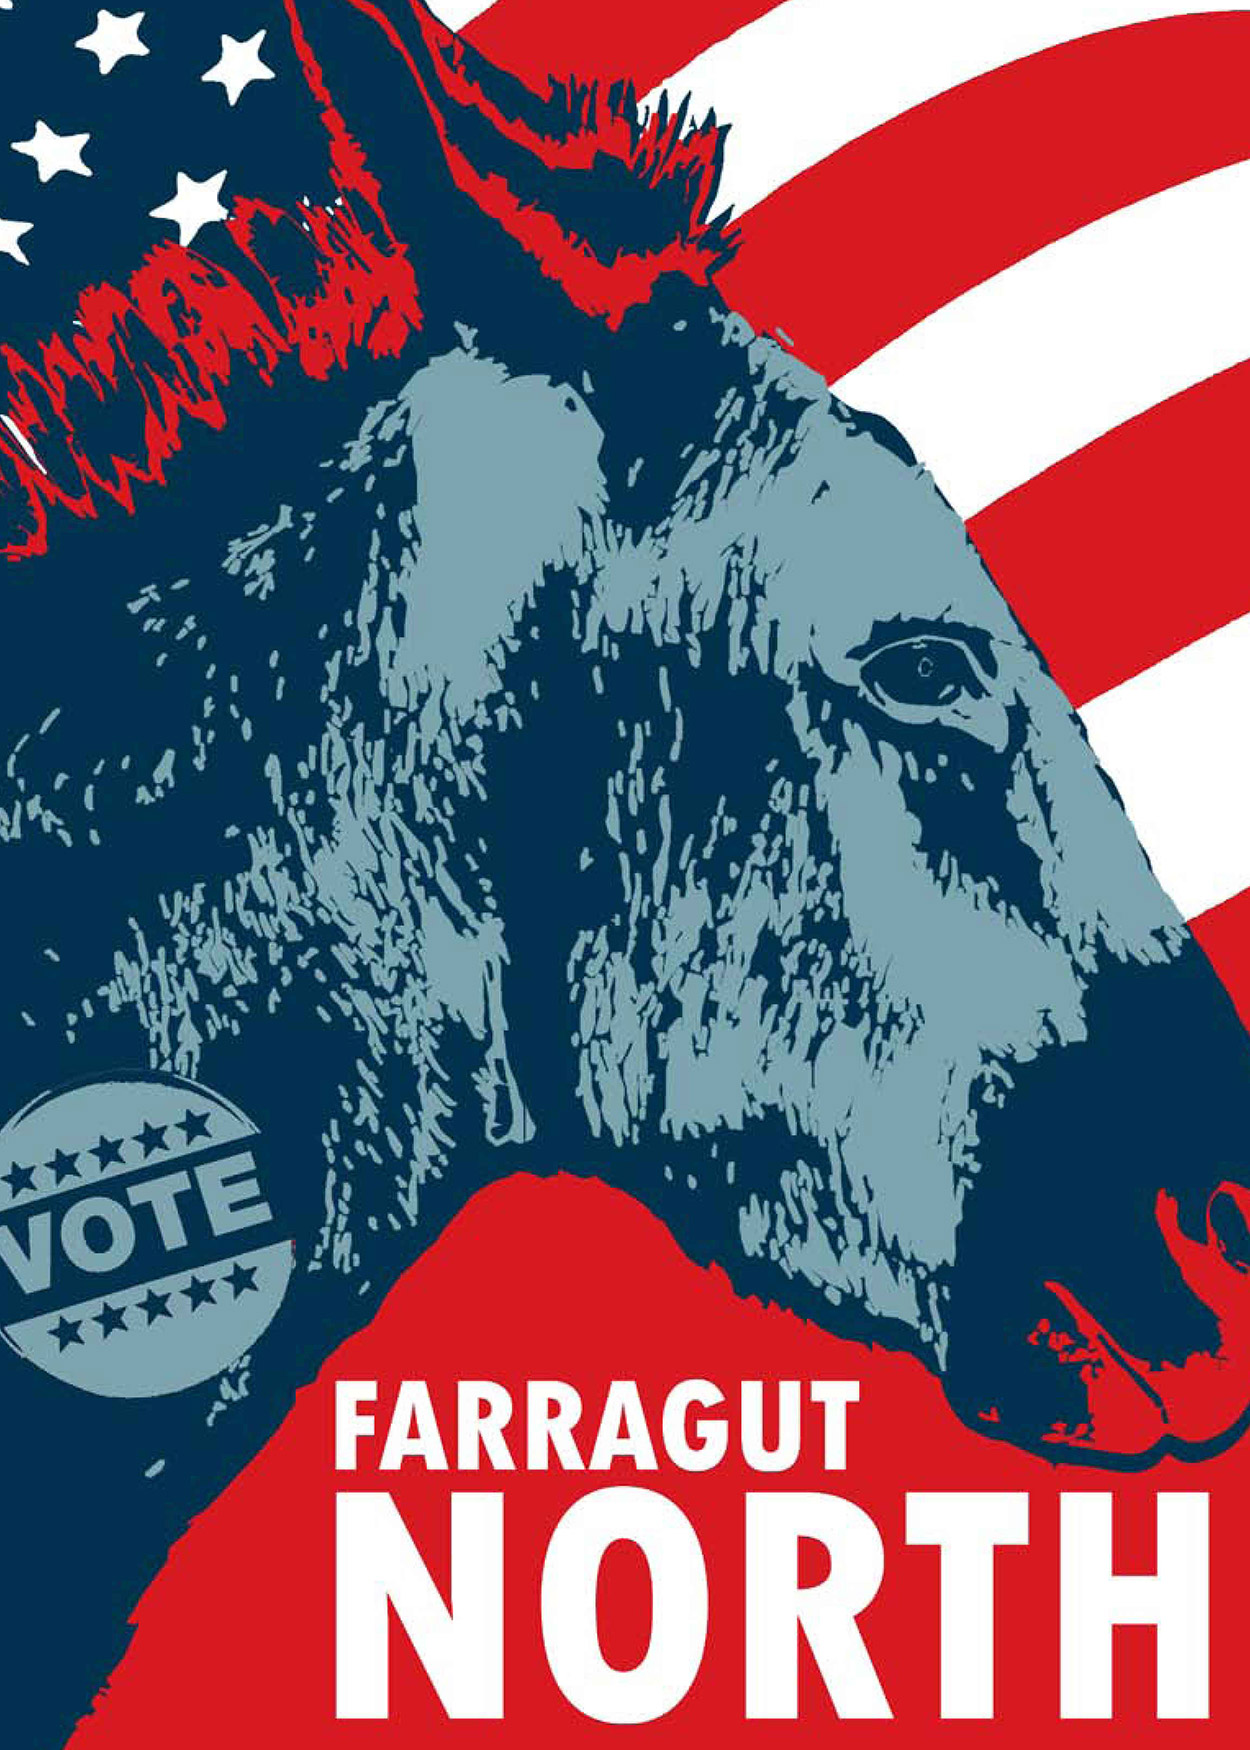 Artwork of a Donkey Head with an American flag background Title: Farragut North